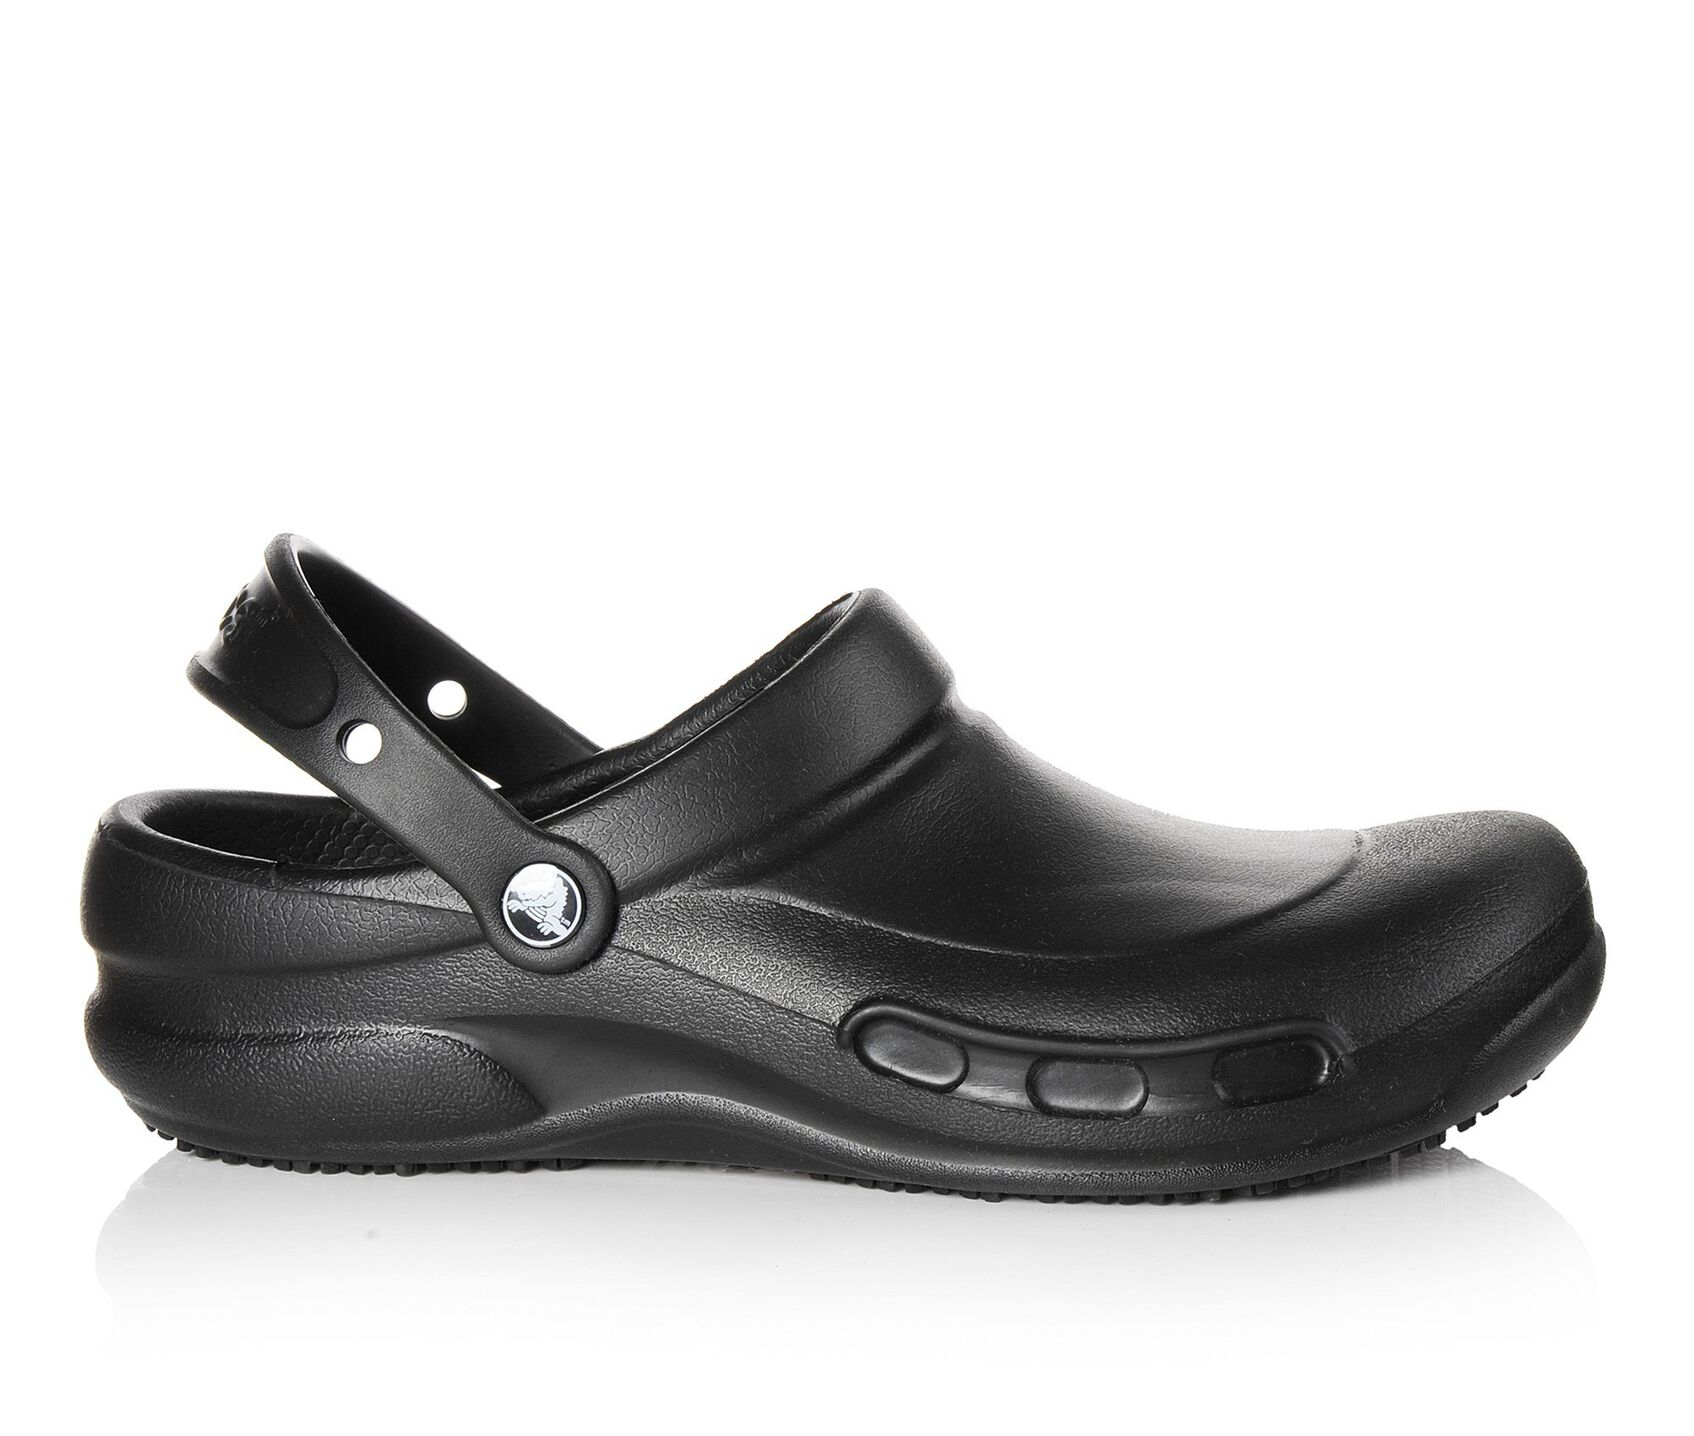 Men S Crocs Work Bistro Slip Resistant Safety Shoes